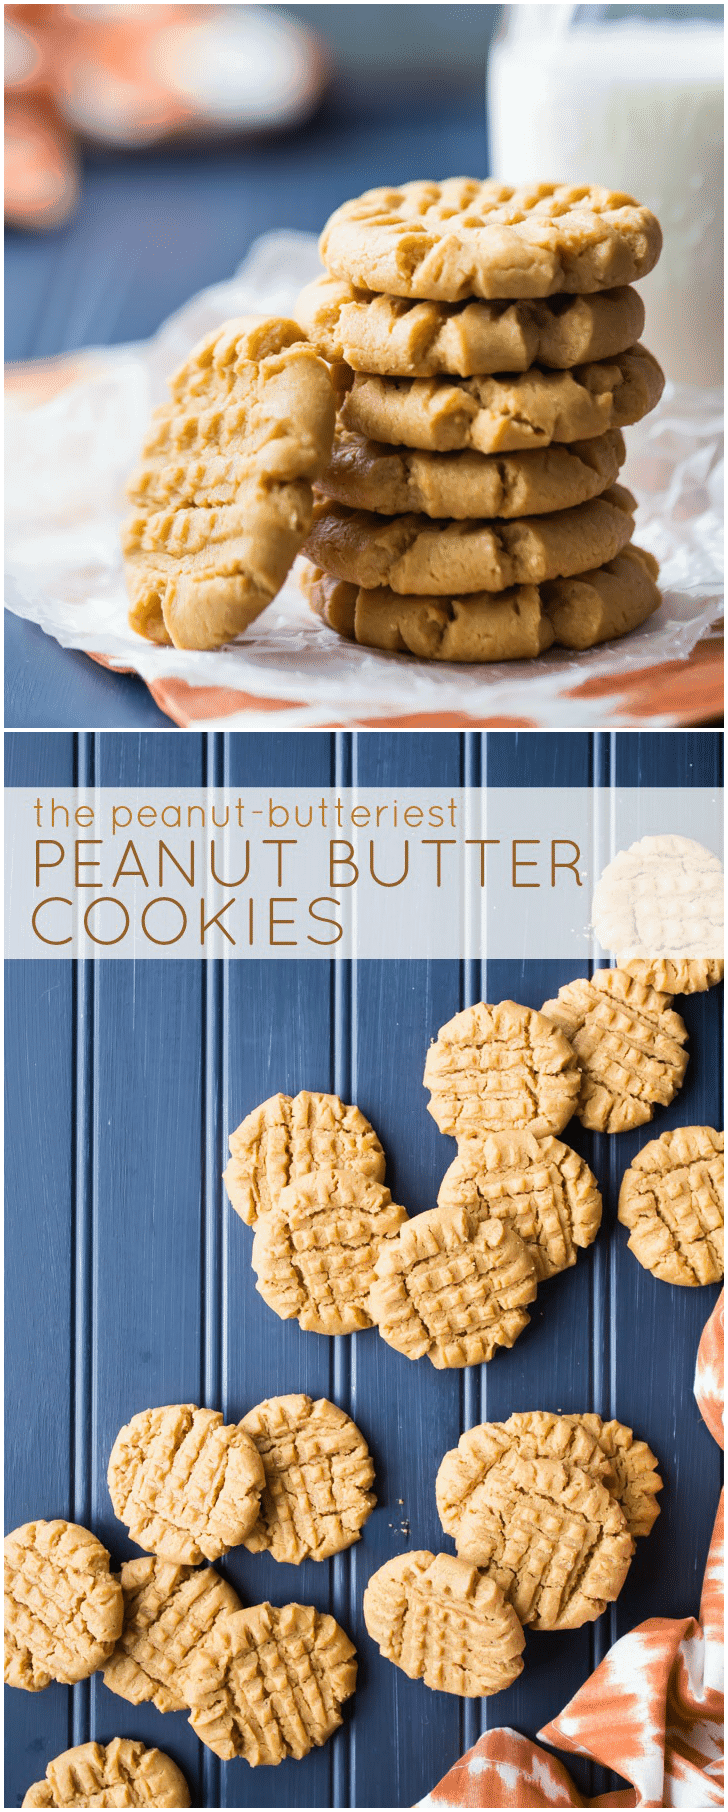 Flourless Peanut Butter Cookies: my family has been making this recipe for years and it is THE BEST! So much peanut butter flavor! #easy #chewy #soft #best #recipe #flourless #glutenfree #peanutbutter #cookies